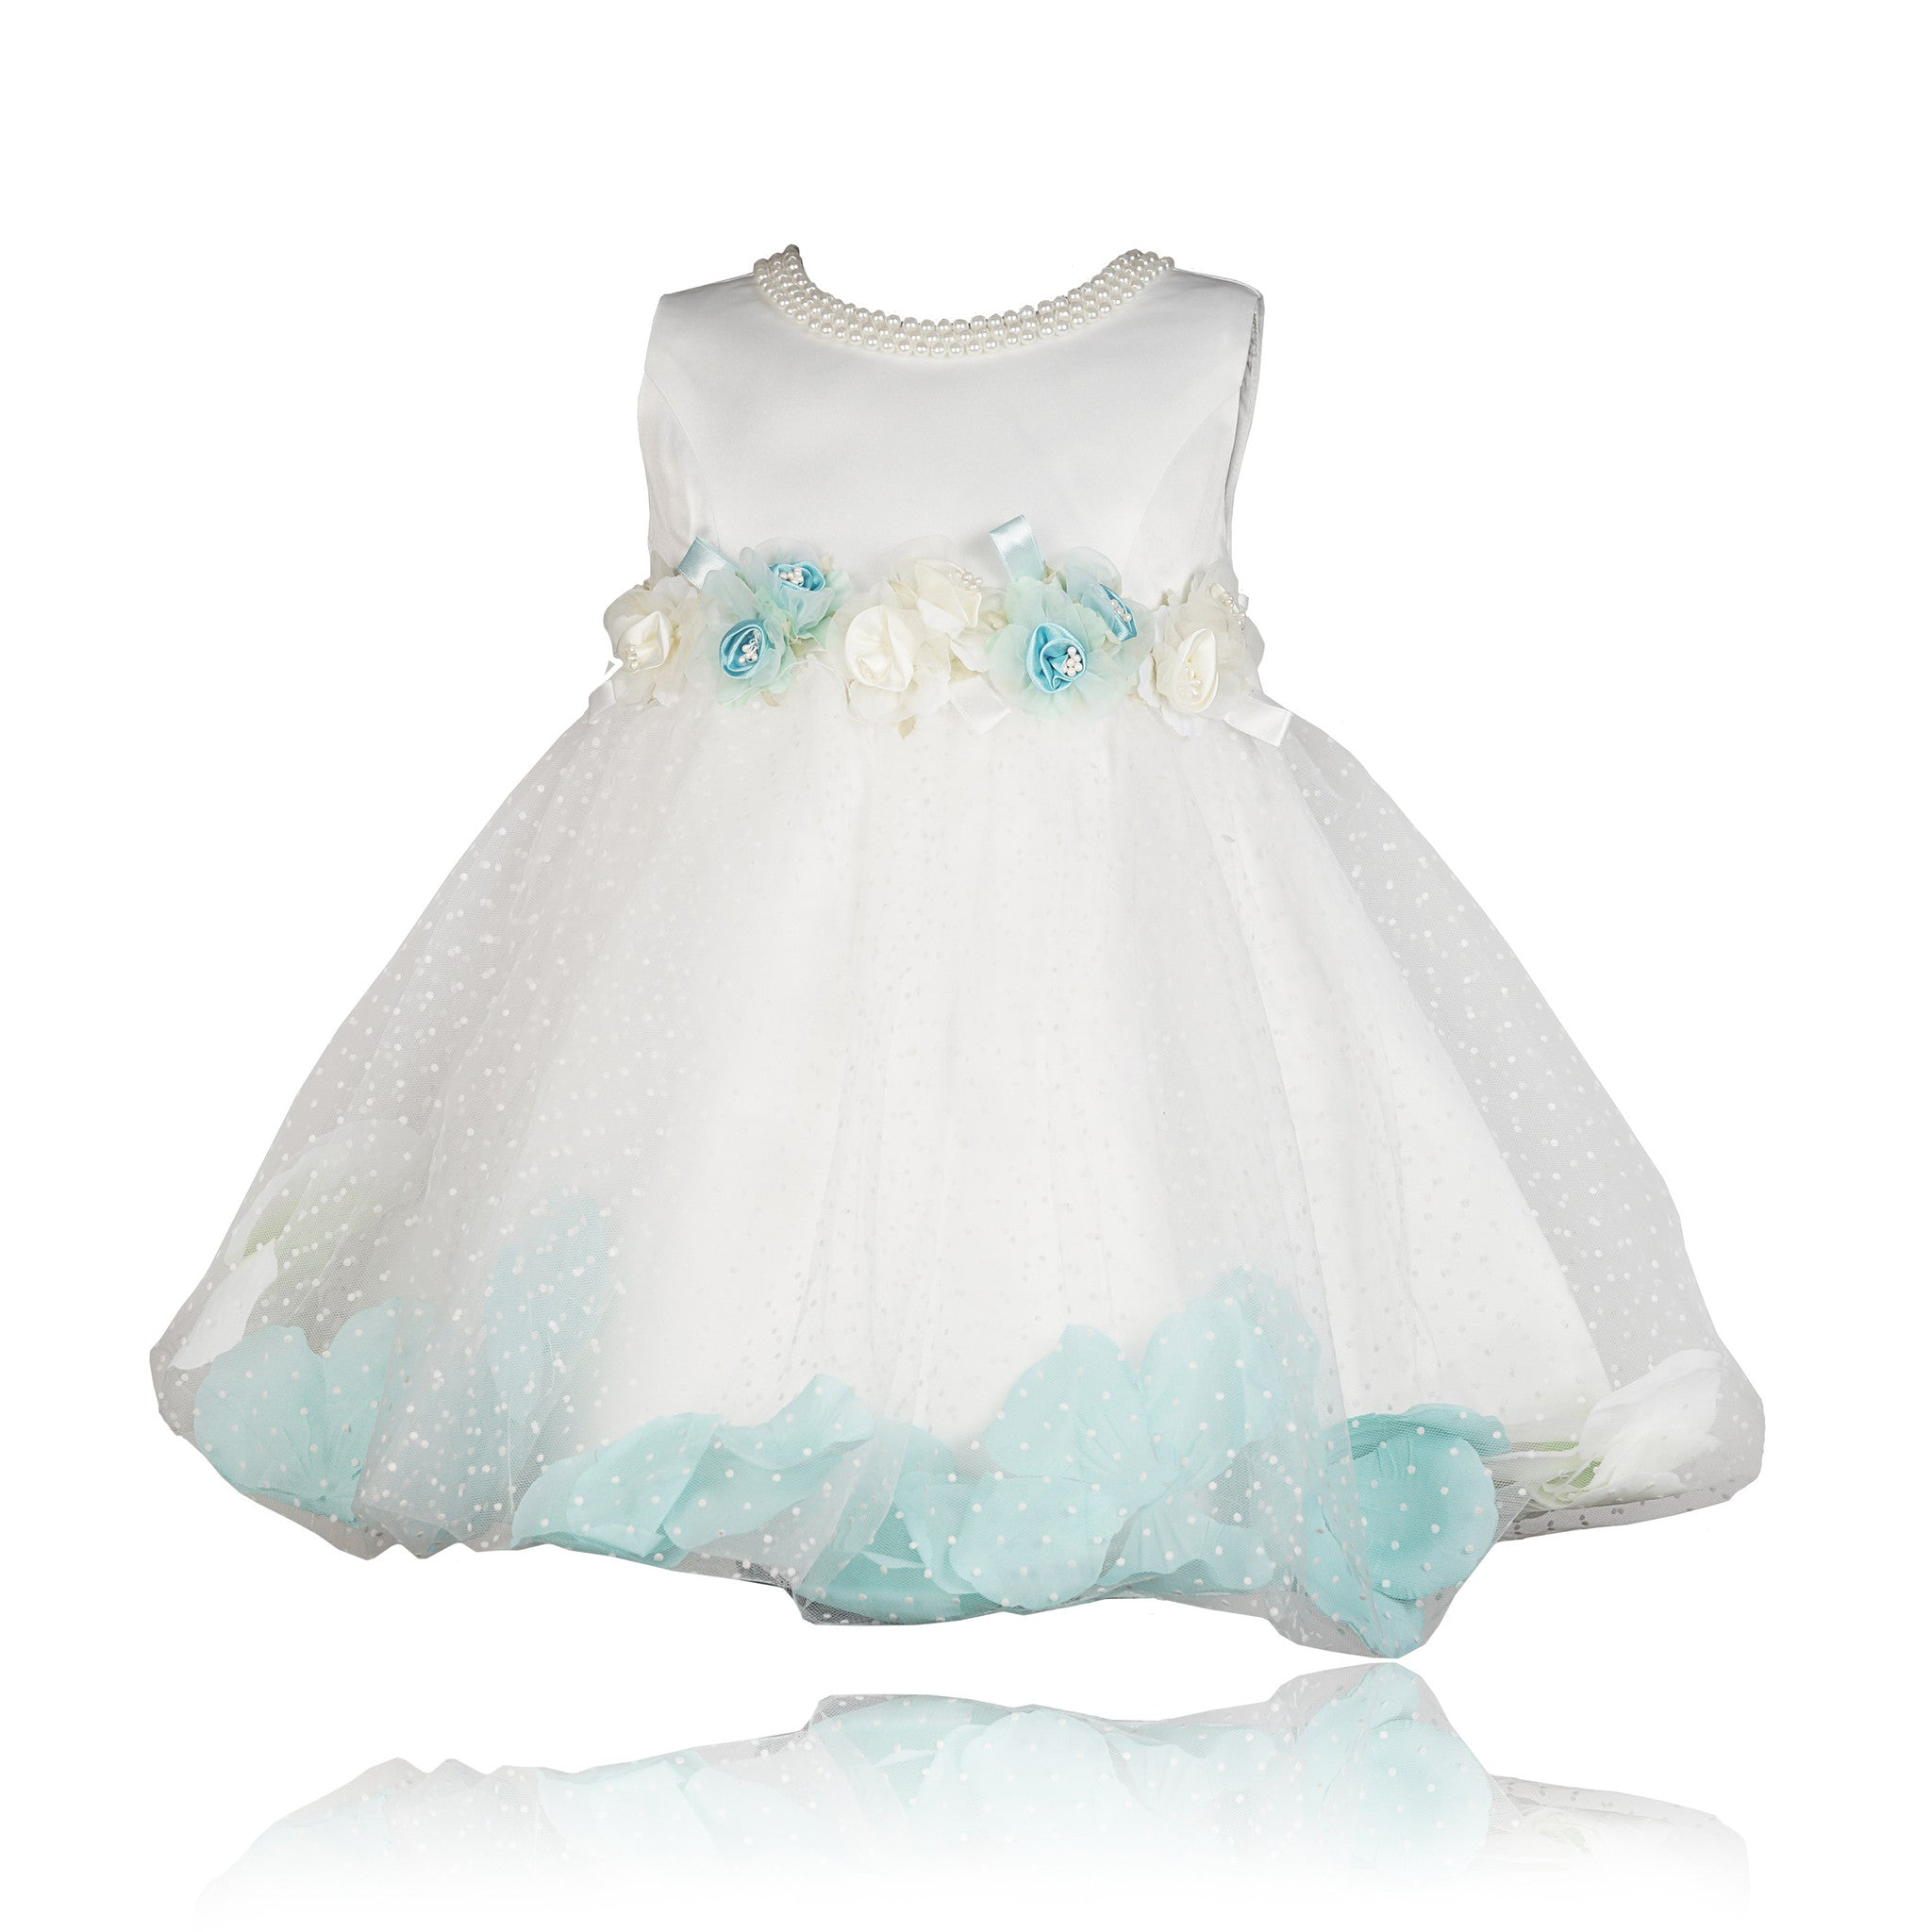 2234ff072612 Buy Coctail White N Turquoise Flowers Dress Online - Coctail